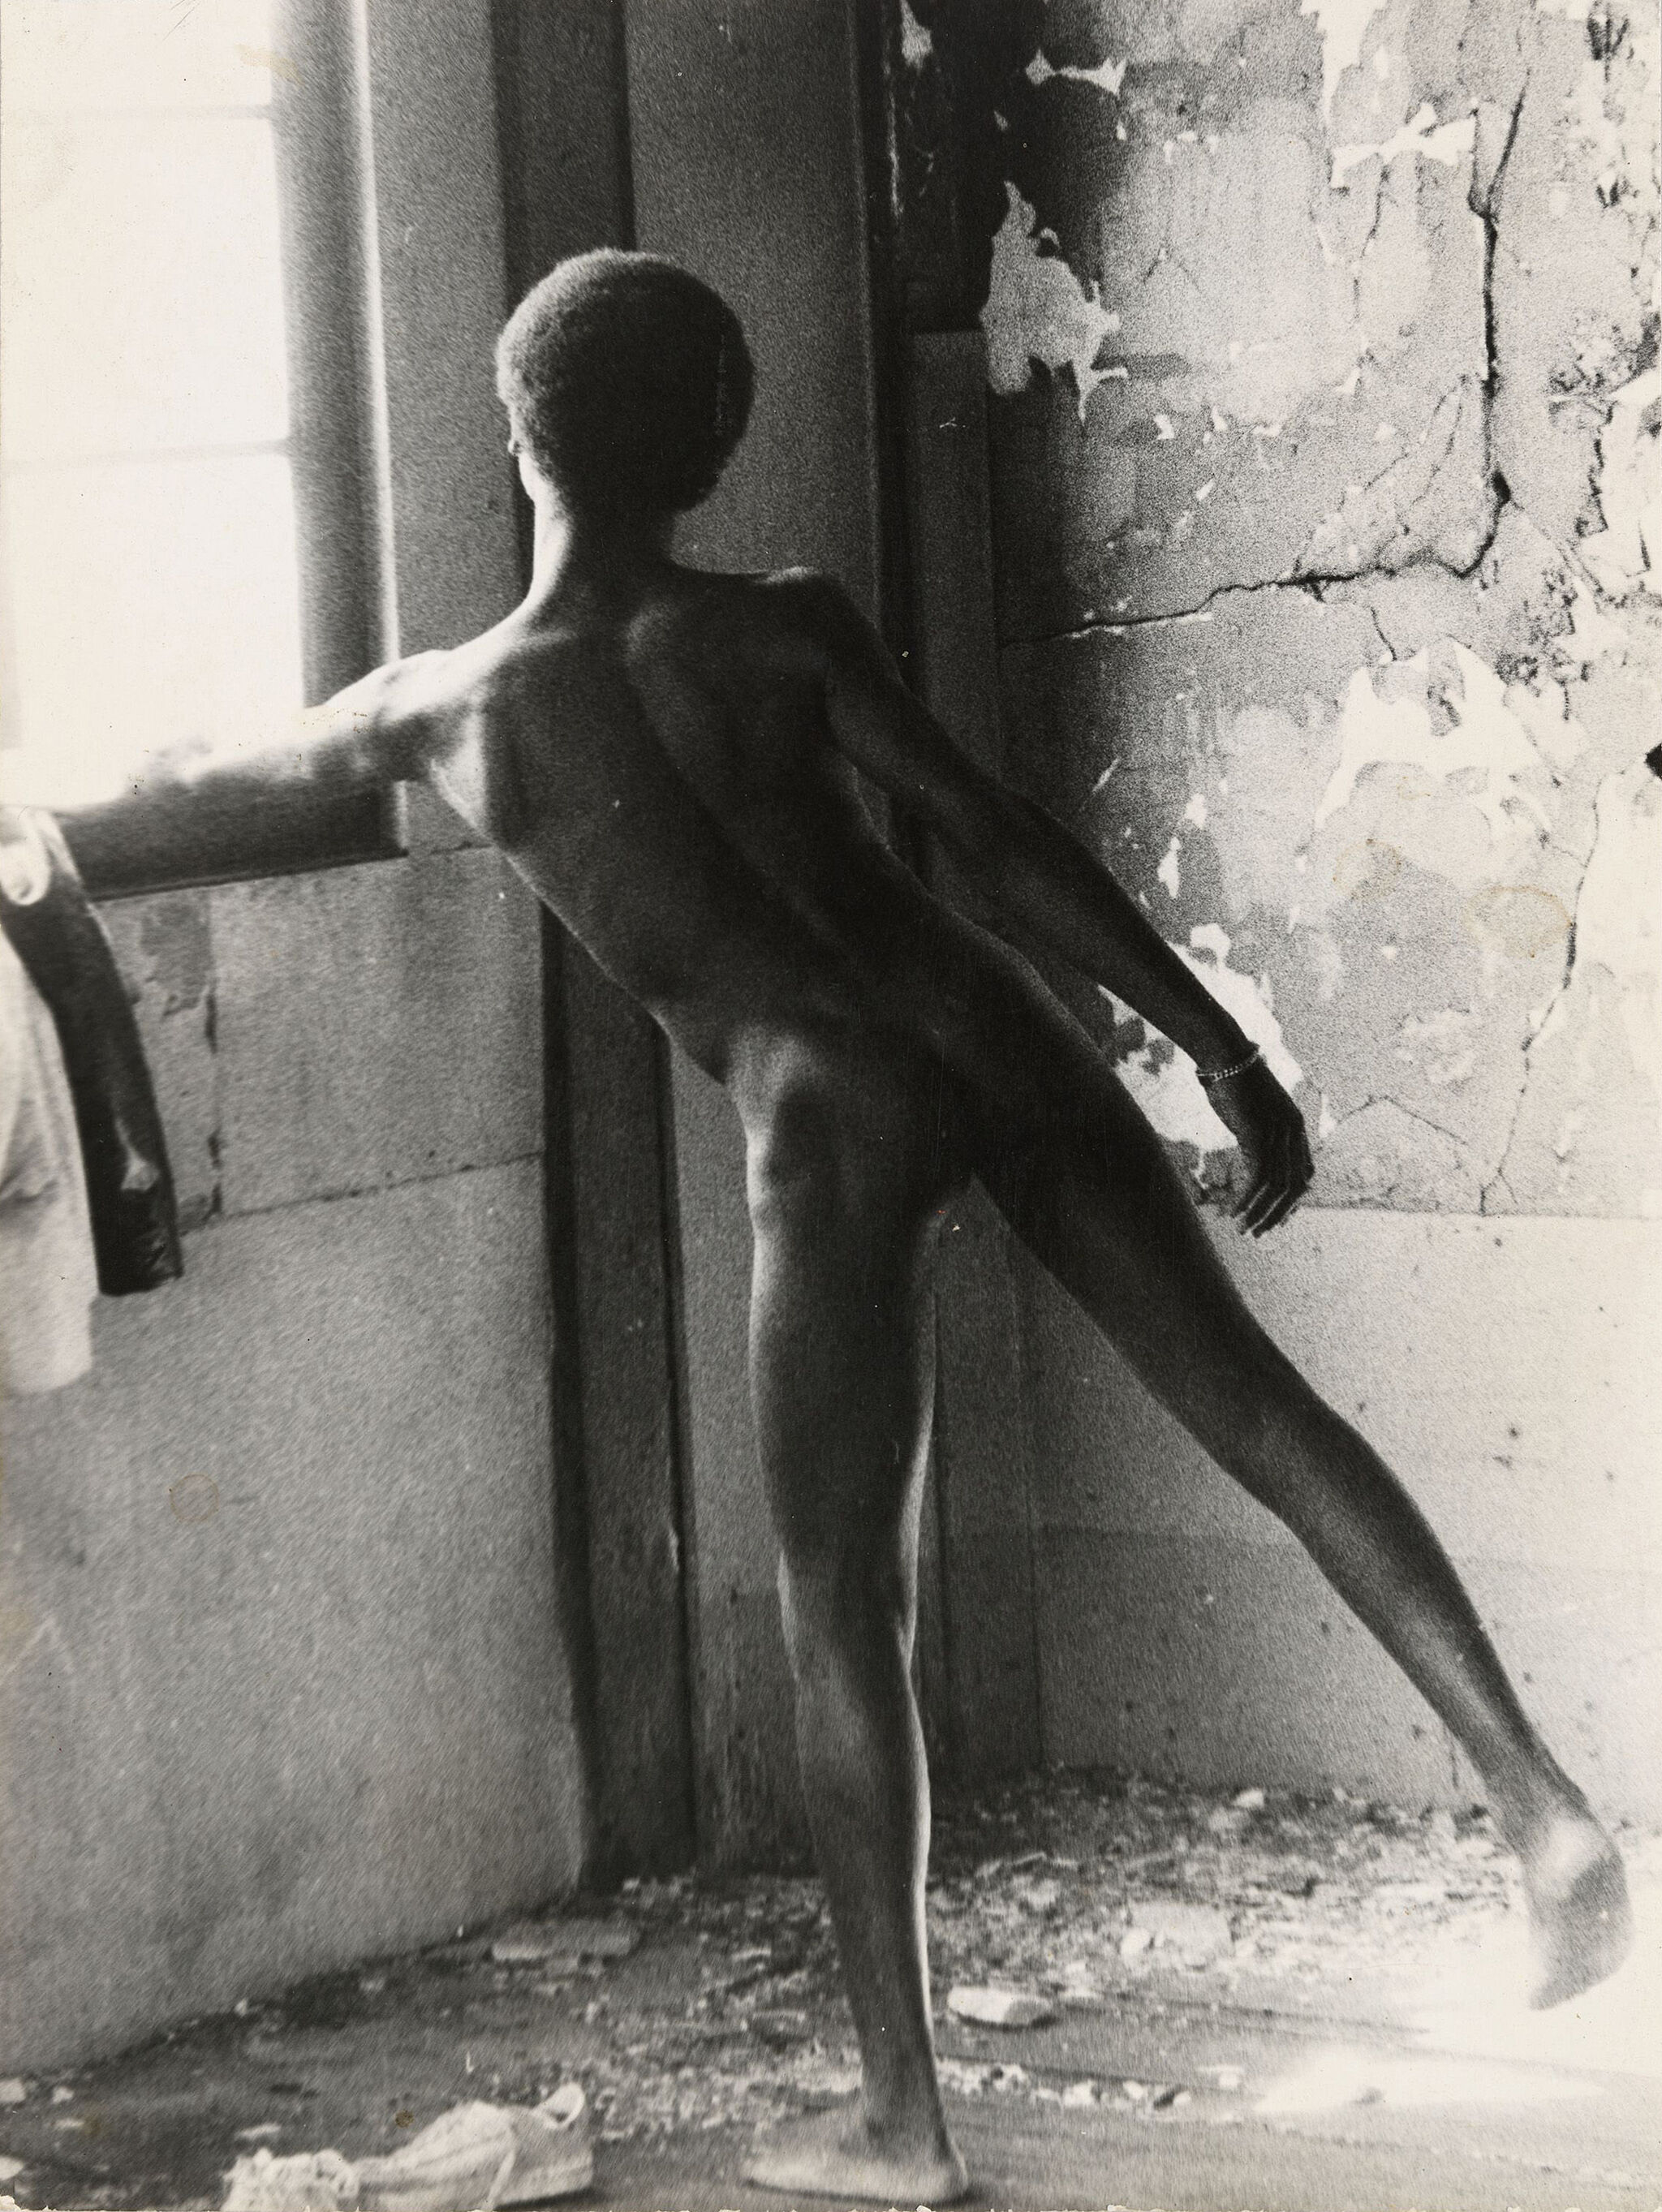 Black and white photograph of a nude person leaning on a window ledge.